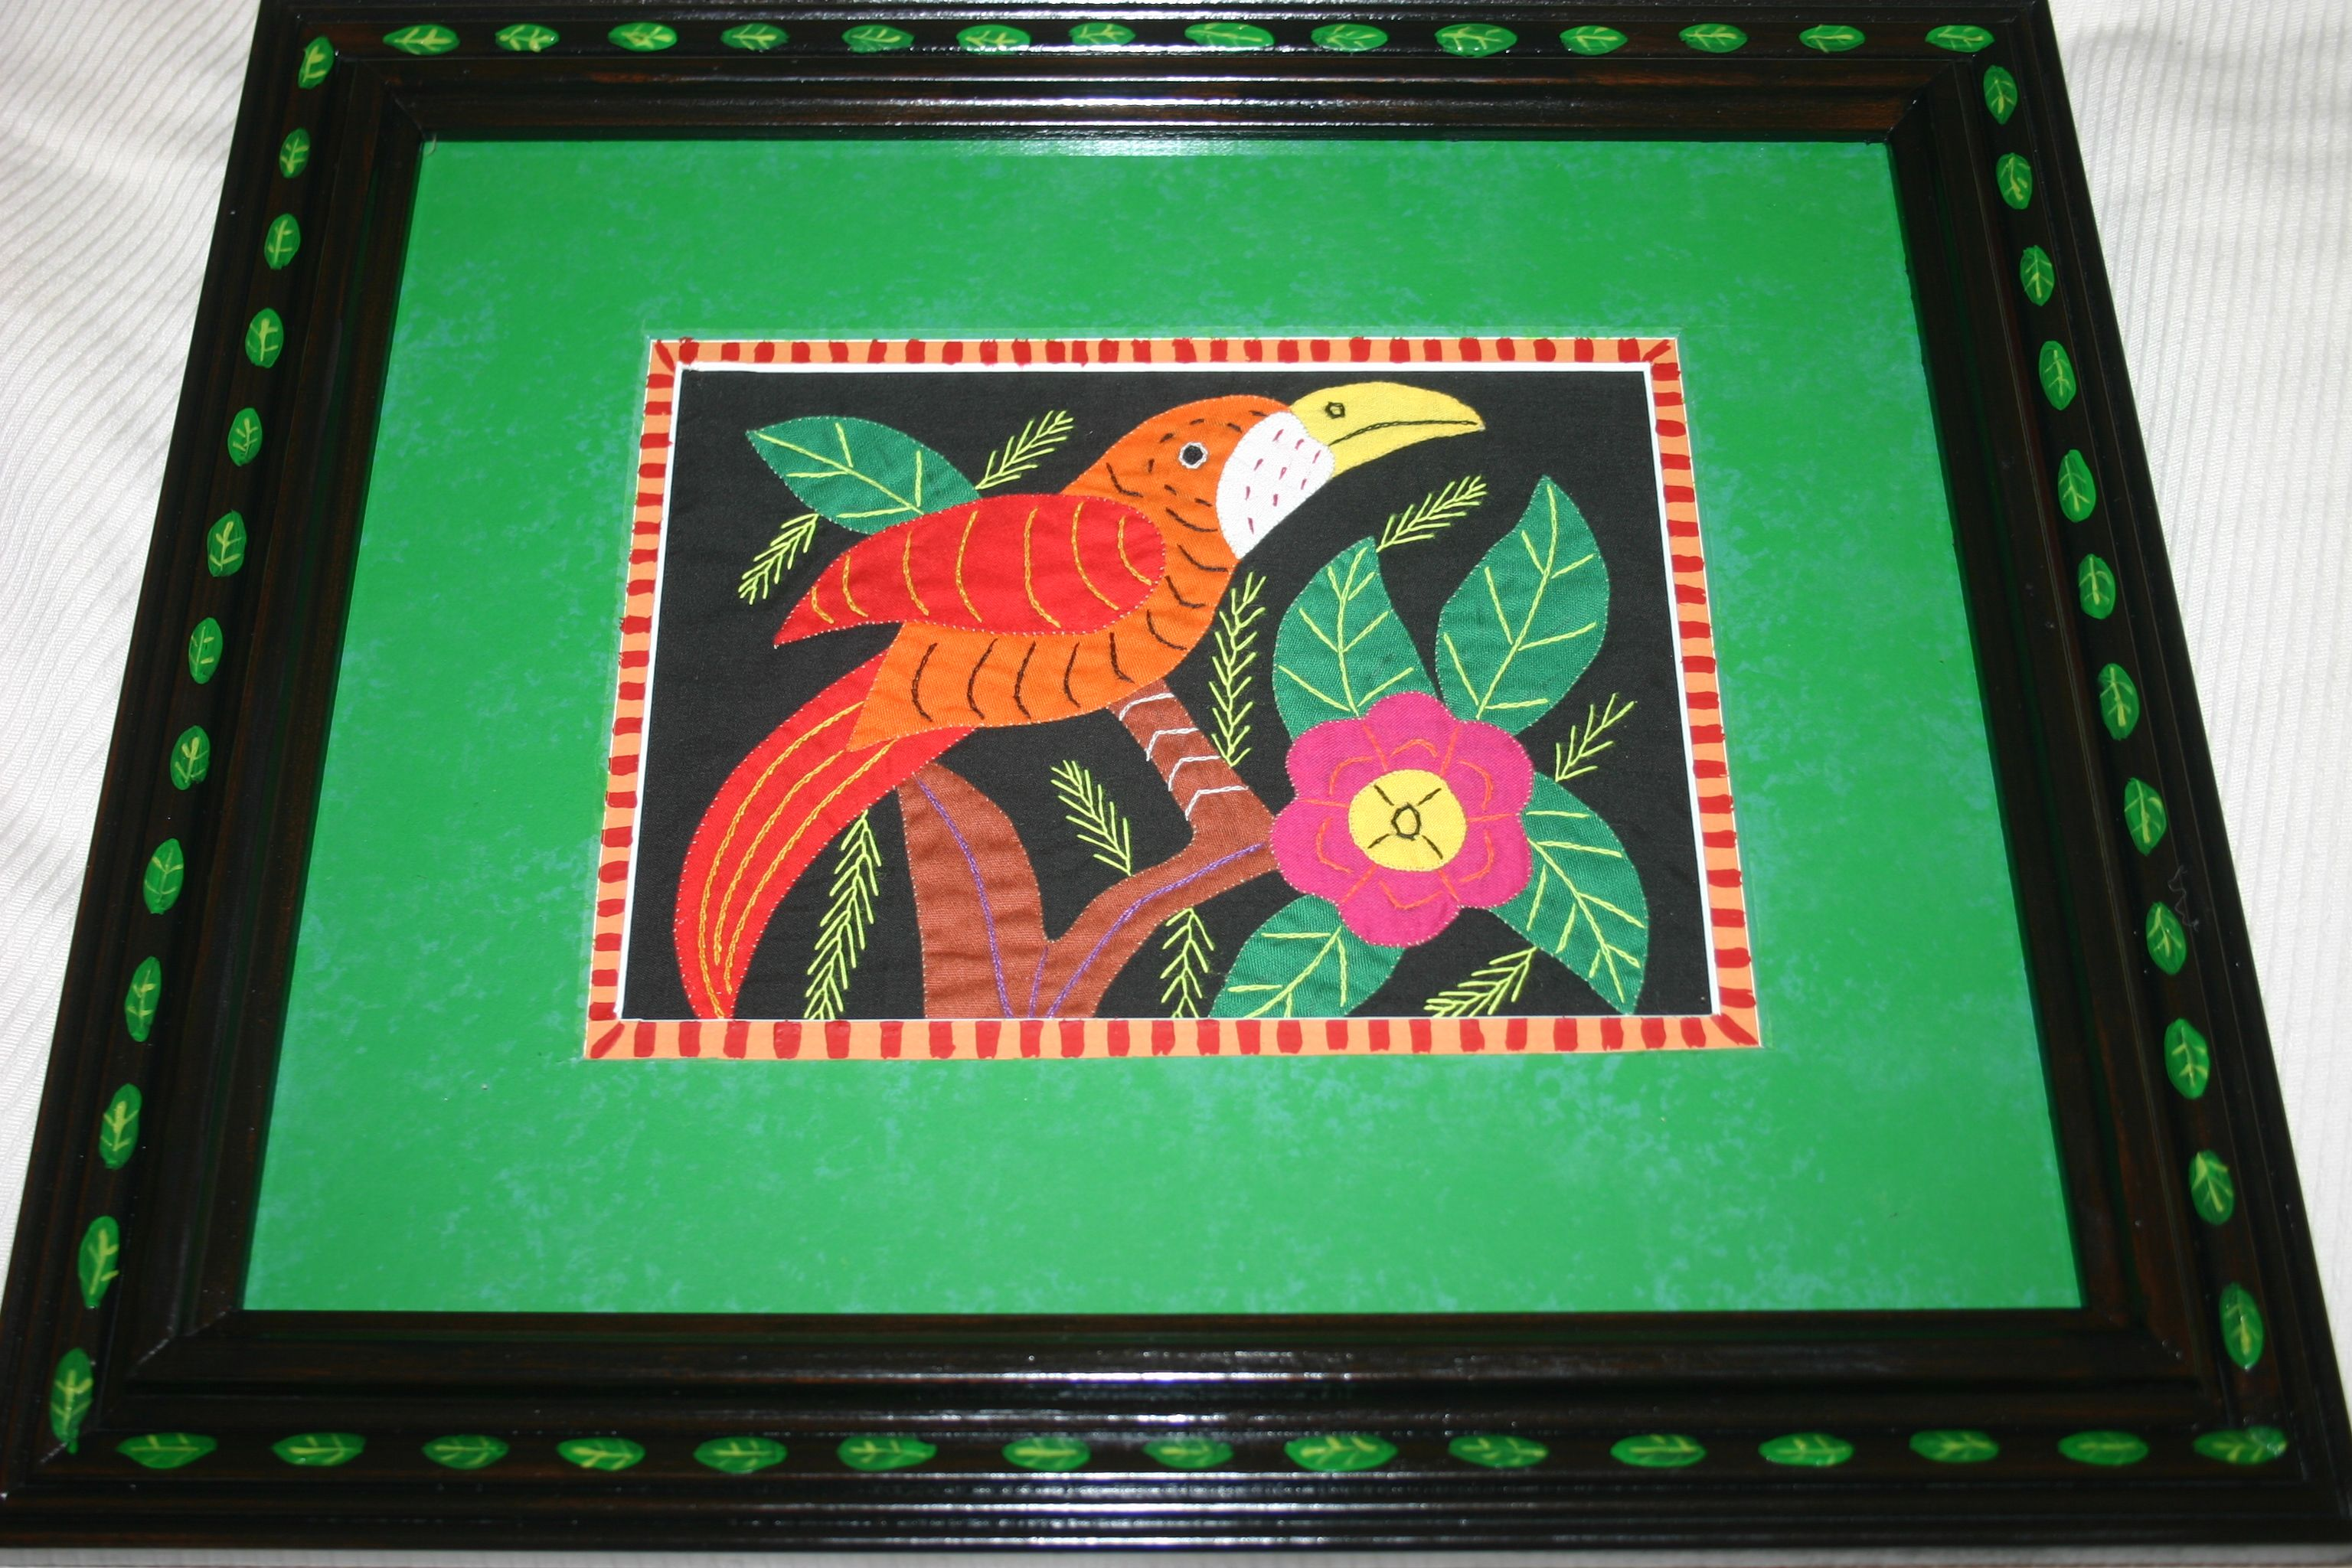 Molas are extremely colorful and uplifting when used in home design. I hand paint one of a kind signed custom frames, made to match and enhance each mola  cheetahdmr@aol.com